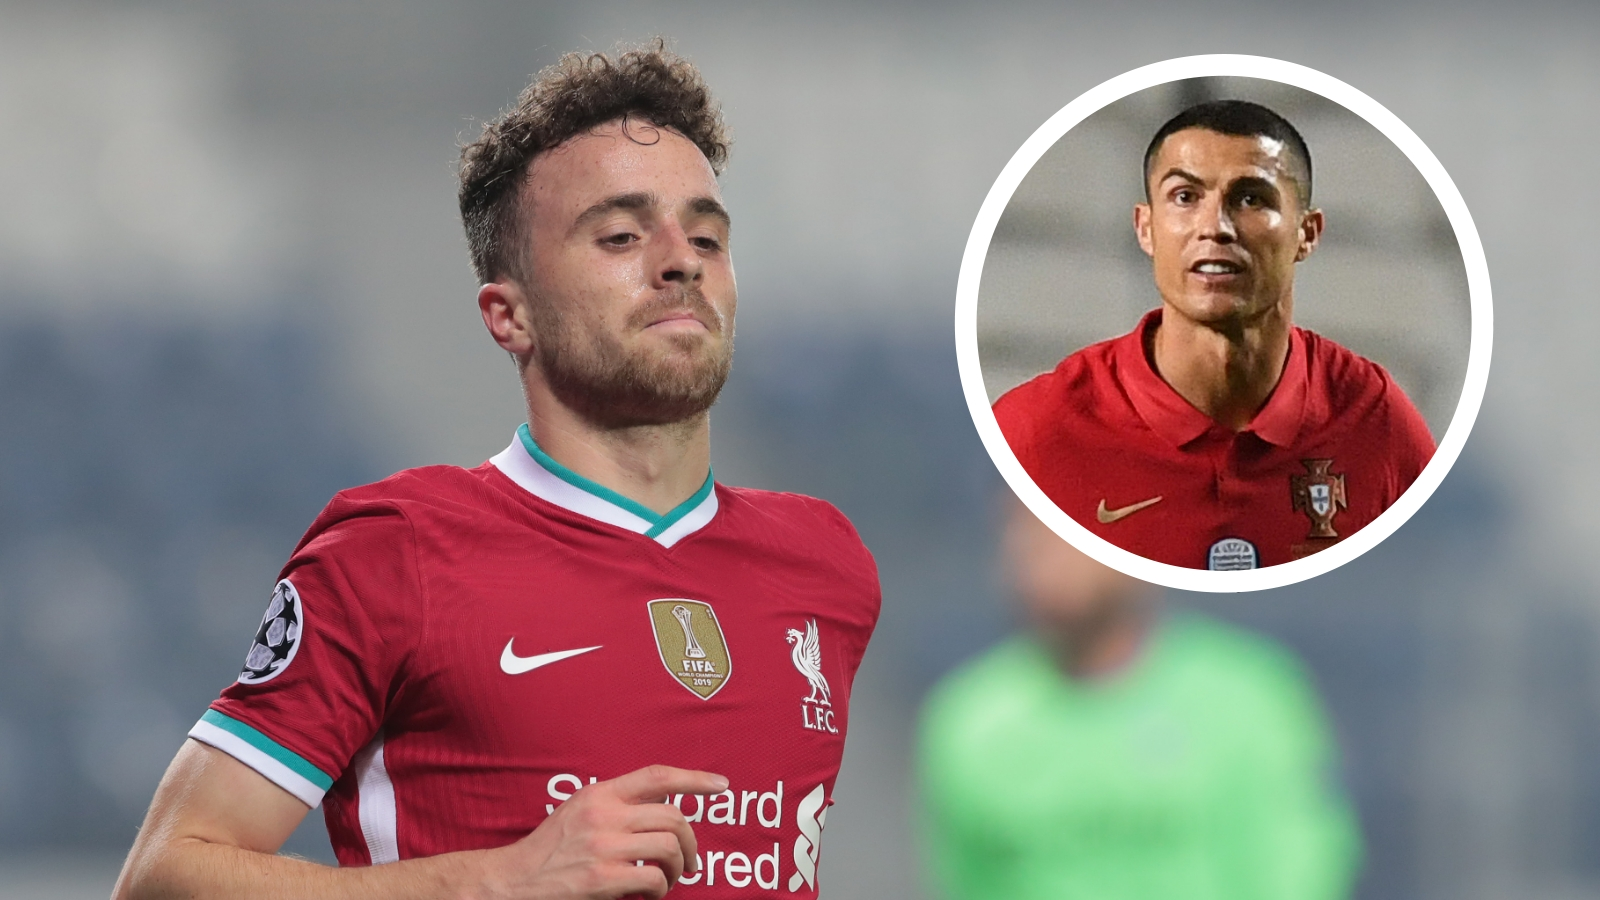 Jota tipped to be Ronaldo's successor by former coach as he lives up to big billing with Liverpool